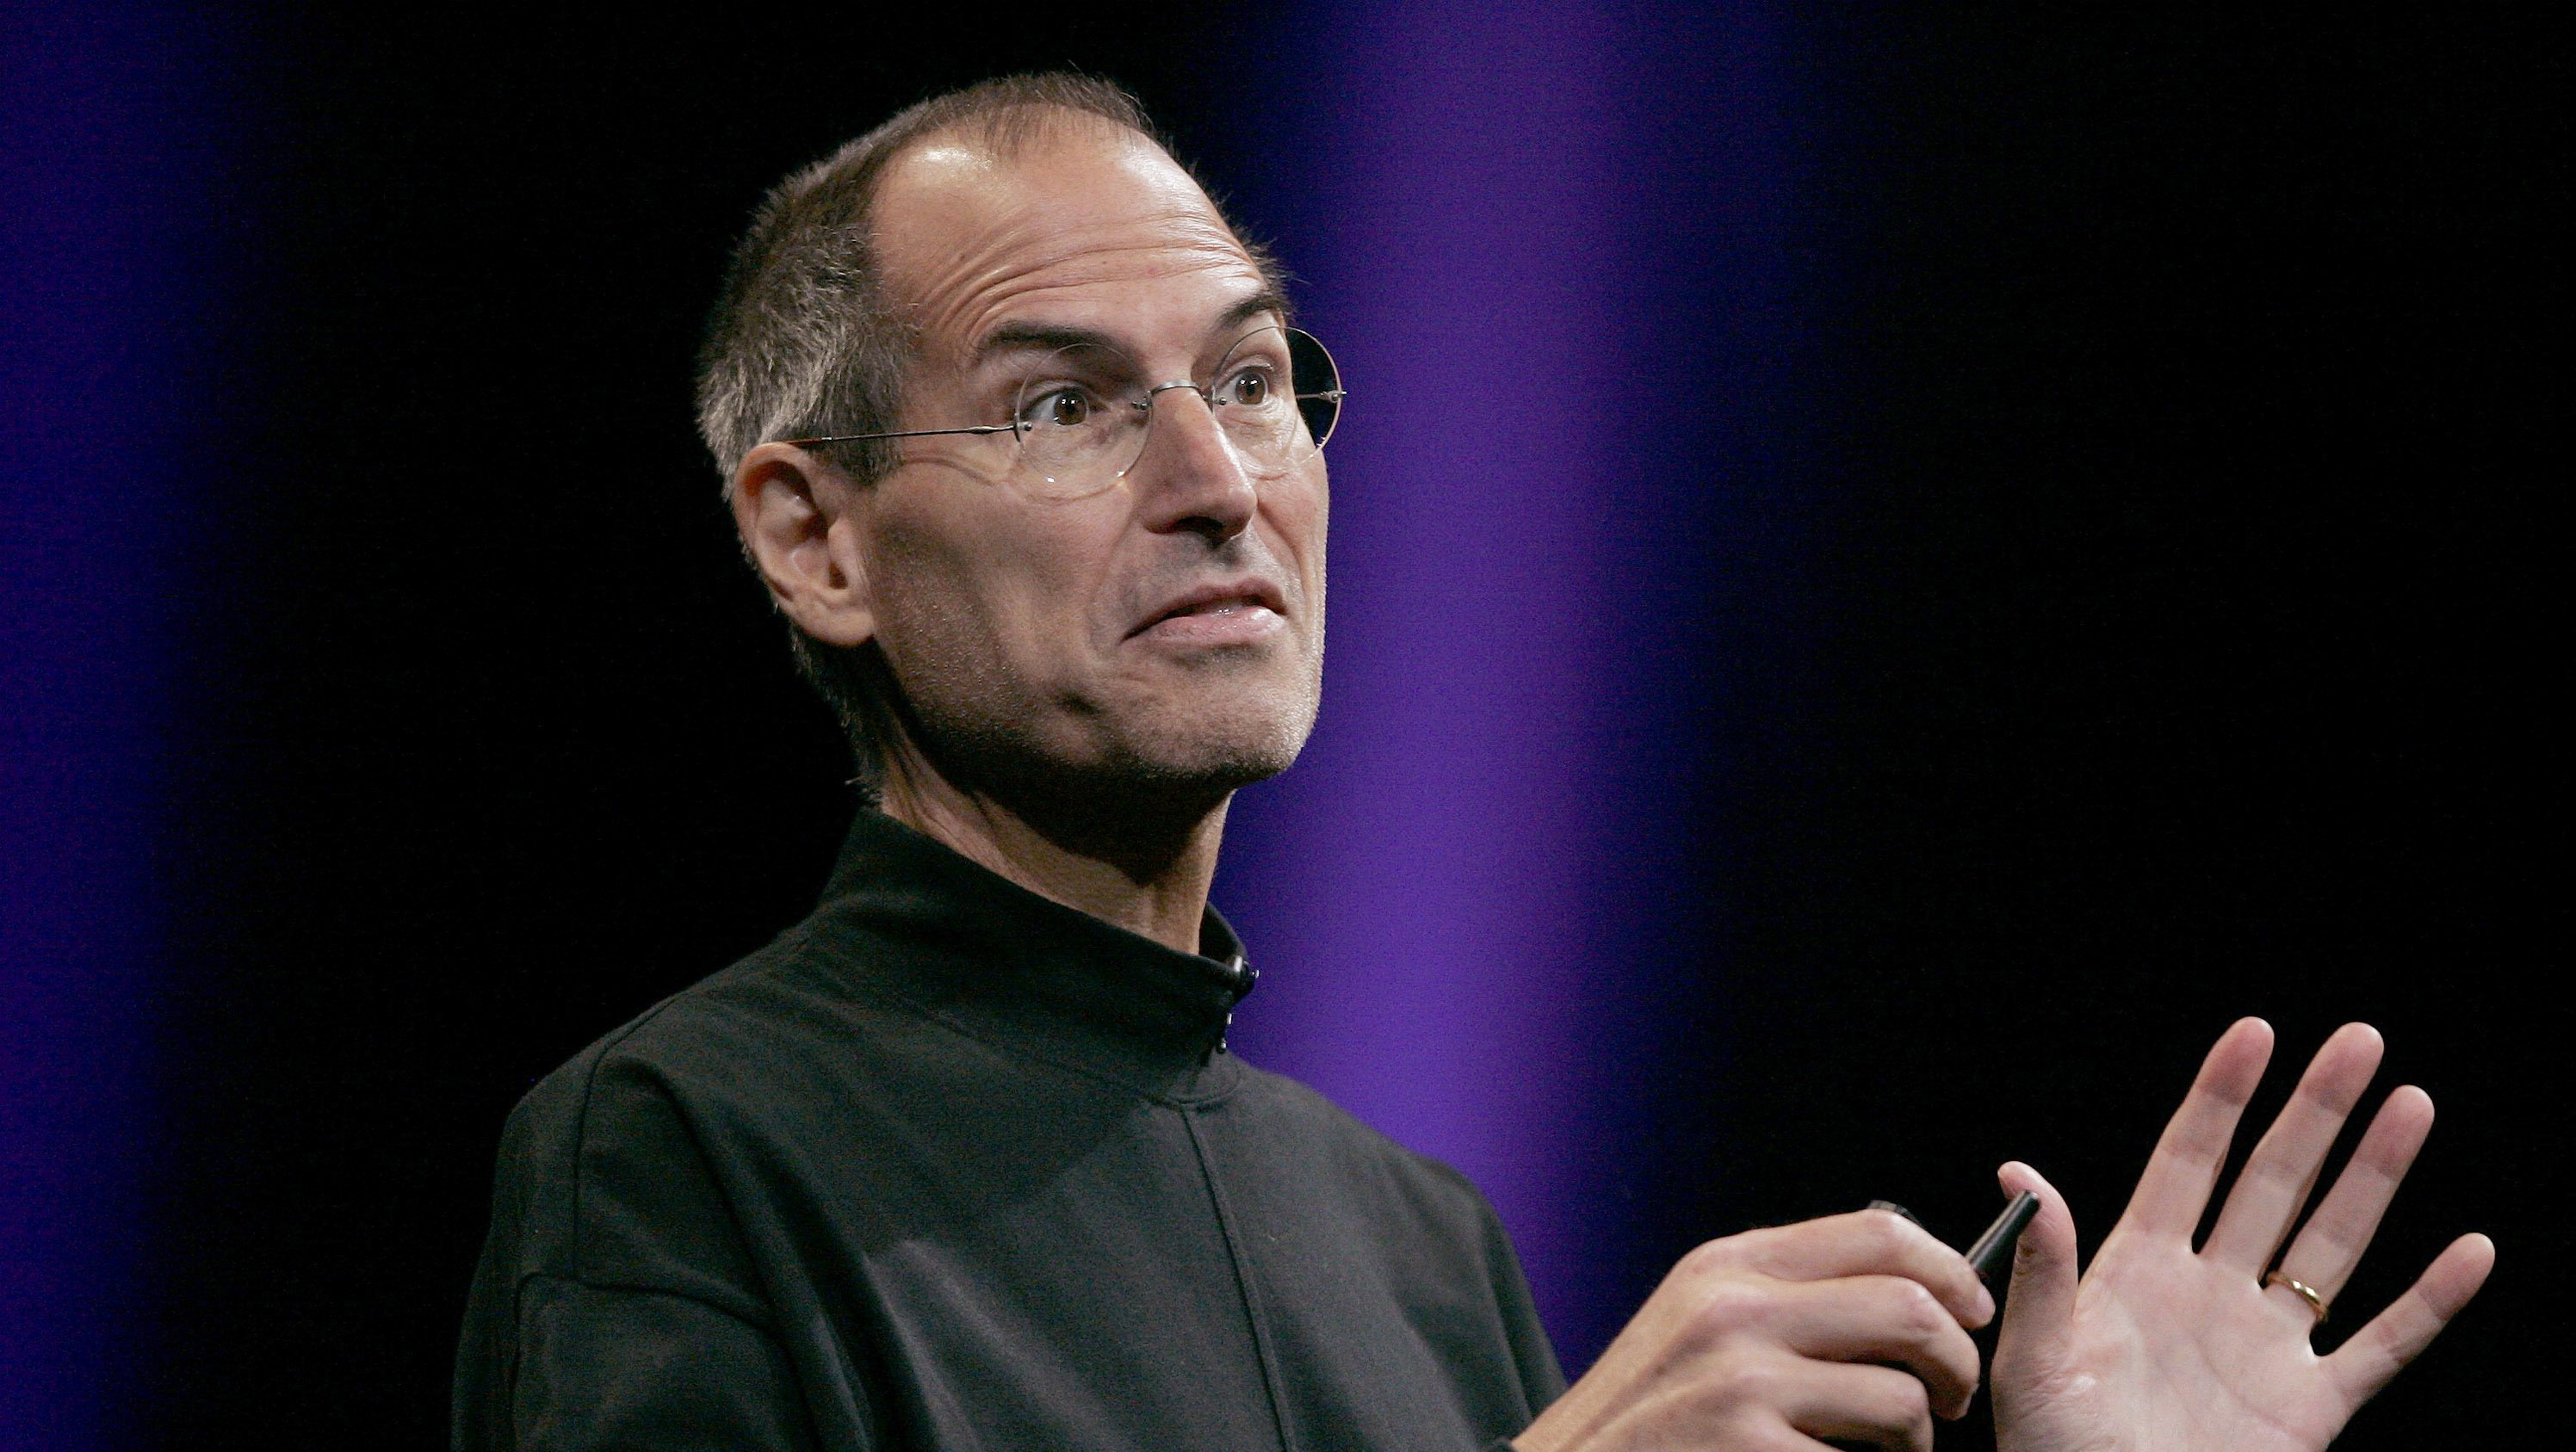 pple Corporation CEO Steve Jobs speaks during his keynote speech at the Apple Worldwide Developers Conference in San Francisco, California June 9, 2008.